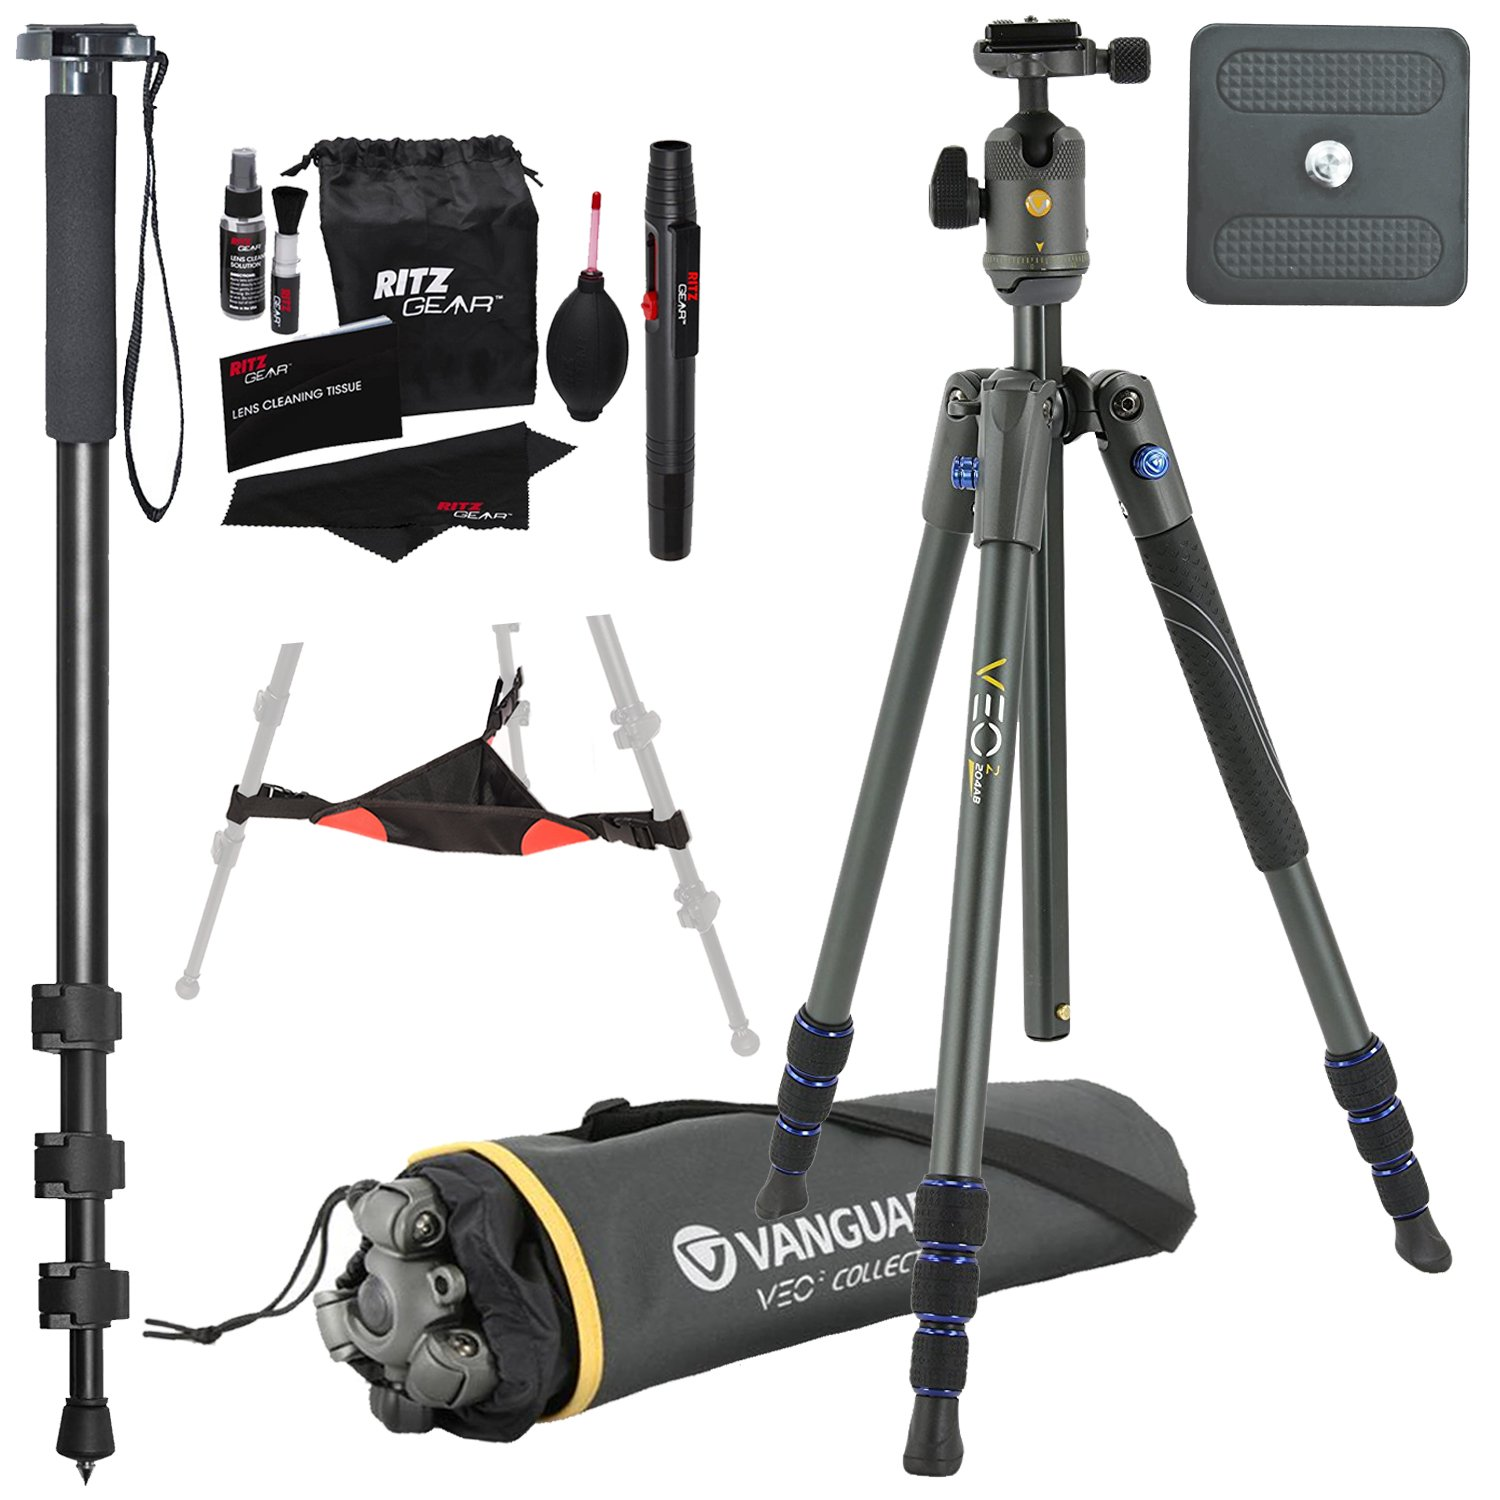 Vanguard VEO 2 204AB Red Aluminum Tripod with VEO 2 BH-45 Ball Head, Ritz Gear Tripod Stone Bag, 72-Inch Monopod with Quick Release and Ritz Gear Cleaning Kit